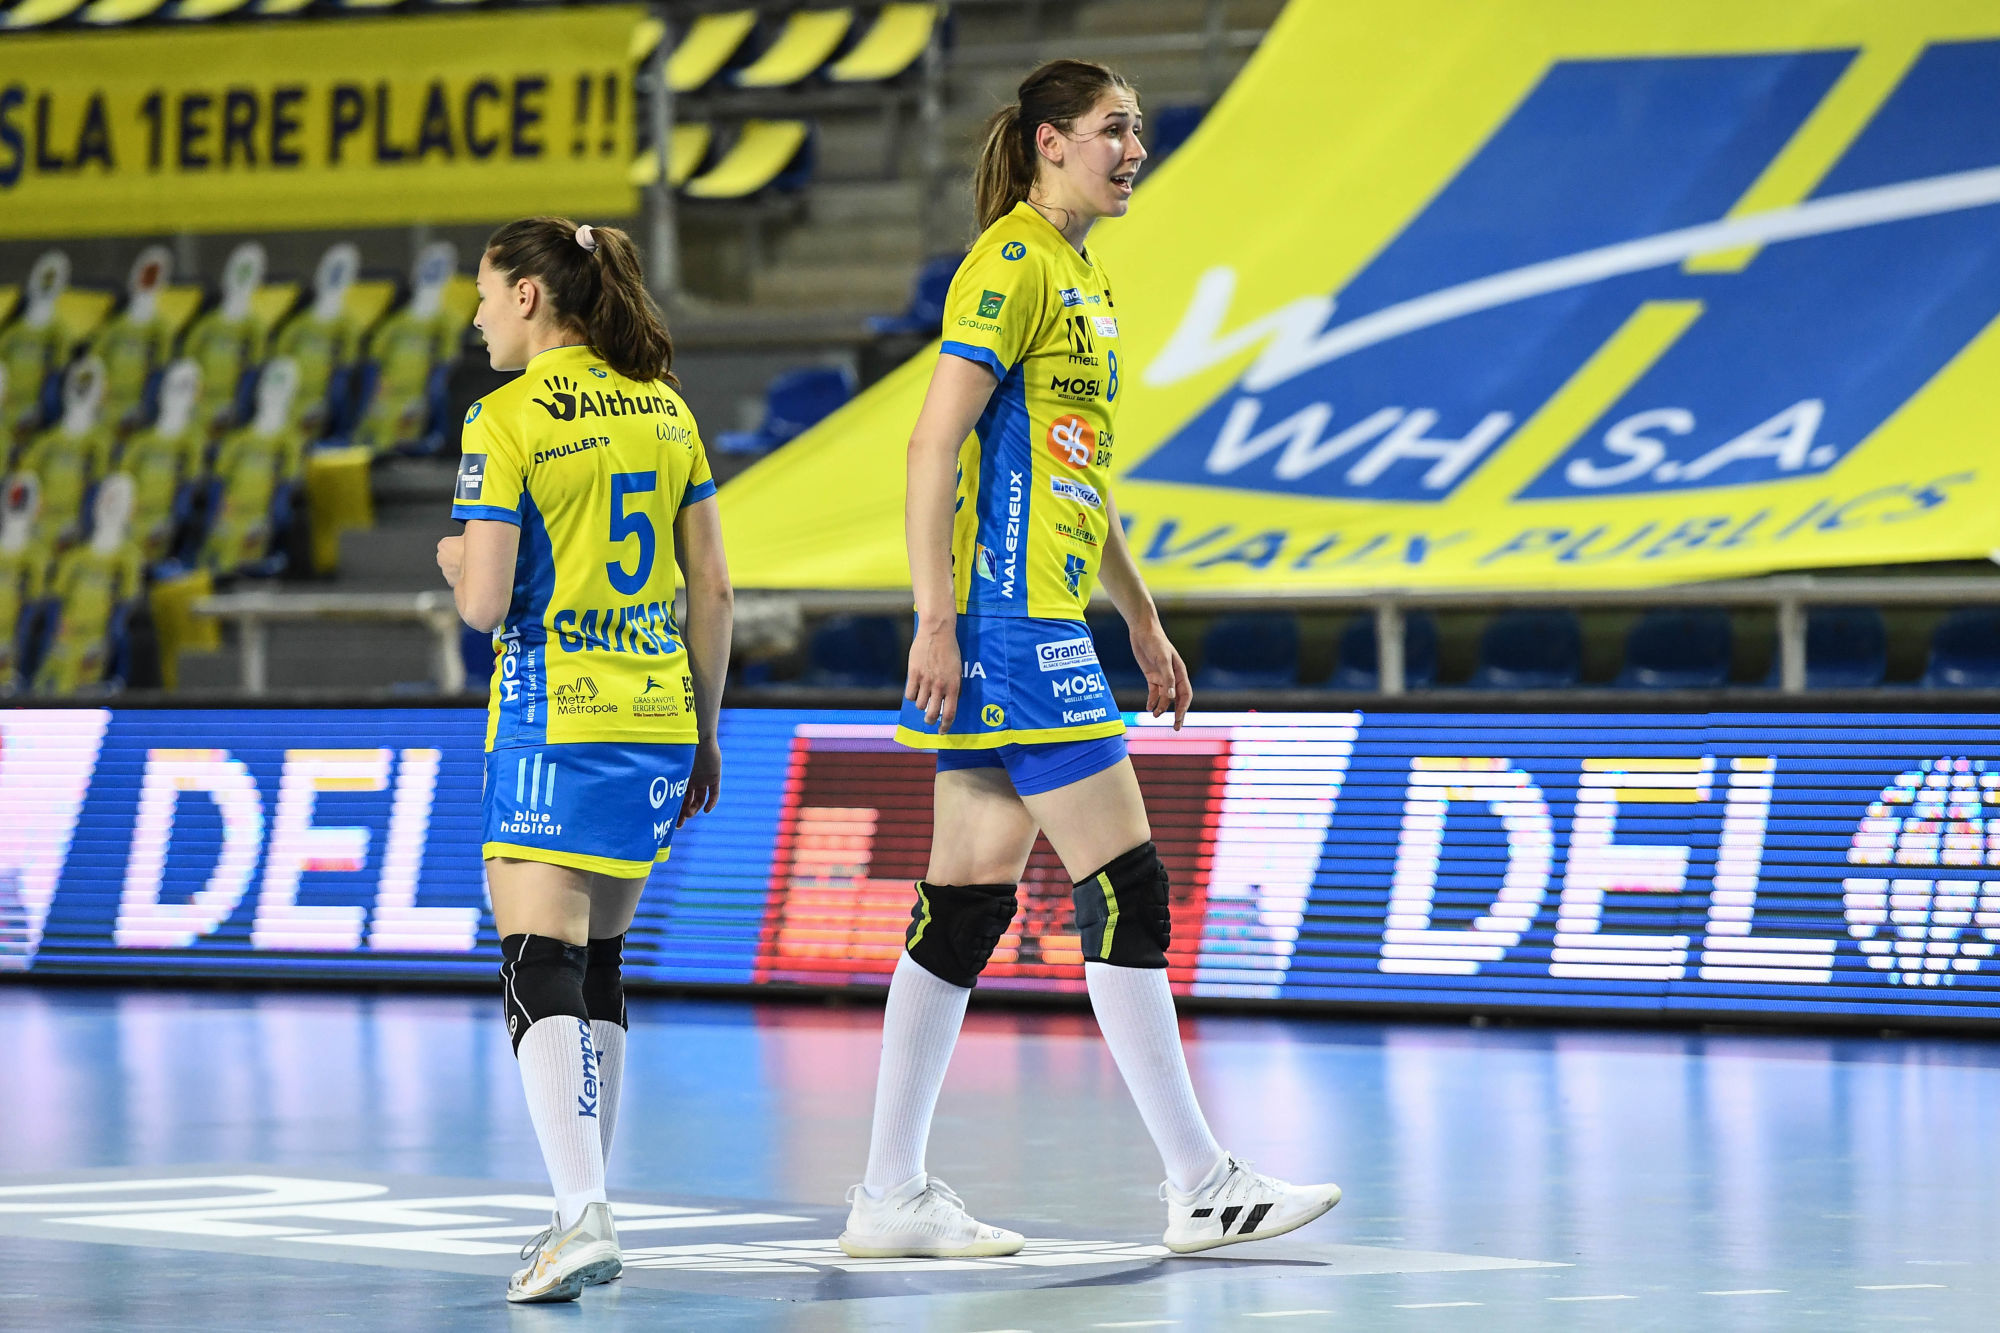 Daphne GAUTSCHI of Metz Handball and Camila MICIJEVIC of Metz Handball dejected during the DELO EHF Women's Champions match between Metz and Brest on April 10, 2021 in Metz, France. (Photo by Anthony Dibon/Icon Sport) - Camila MICIJEVIC - Daphne GAUTSCHI - Palais Omnisports Les Arenes Metz - Metz (France)